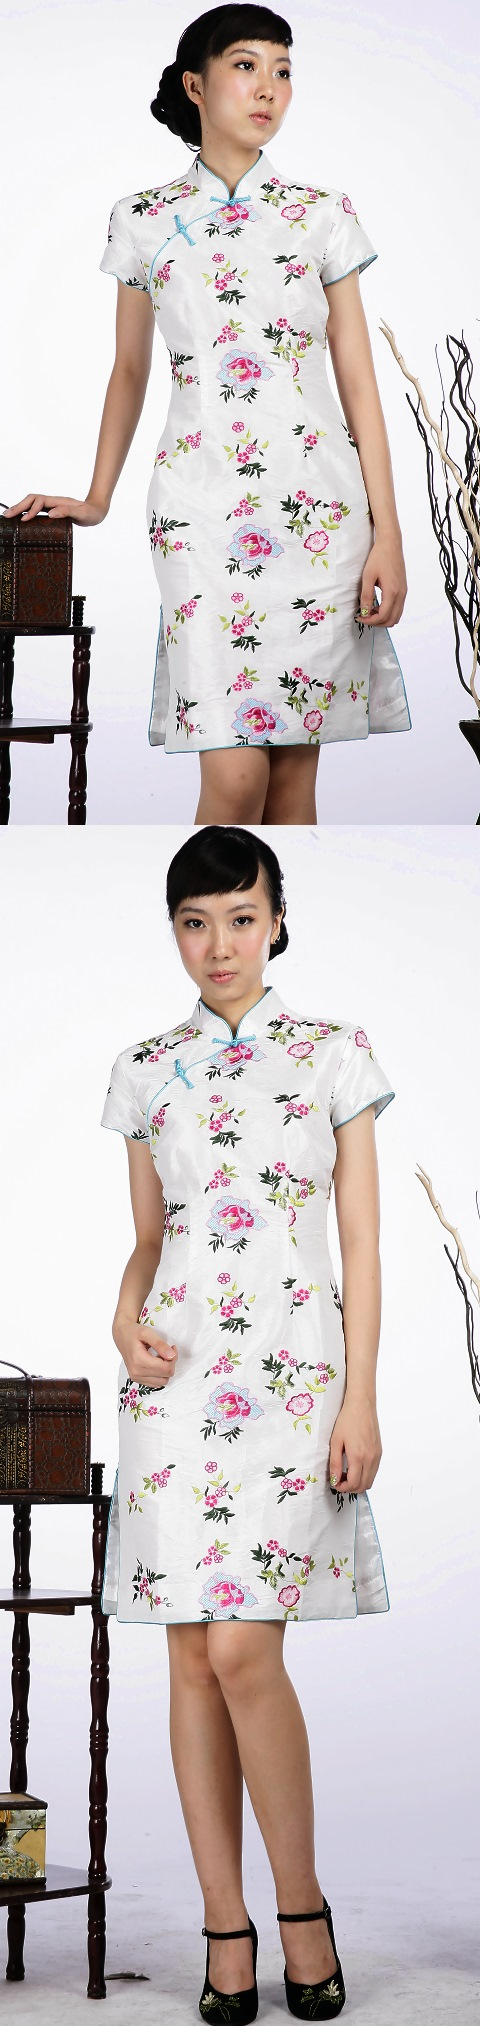 Short-sleeve Floral Embroidery Midi Cheongsam Dress (White)